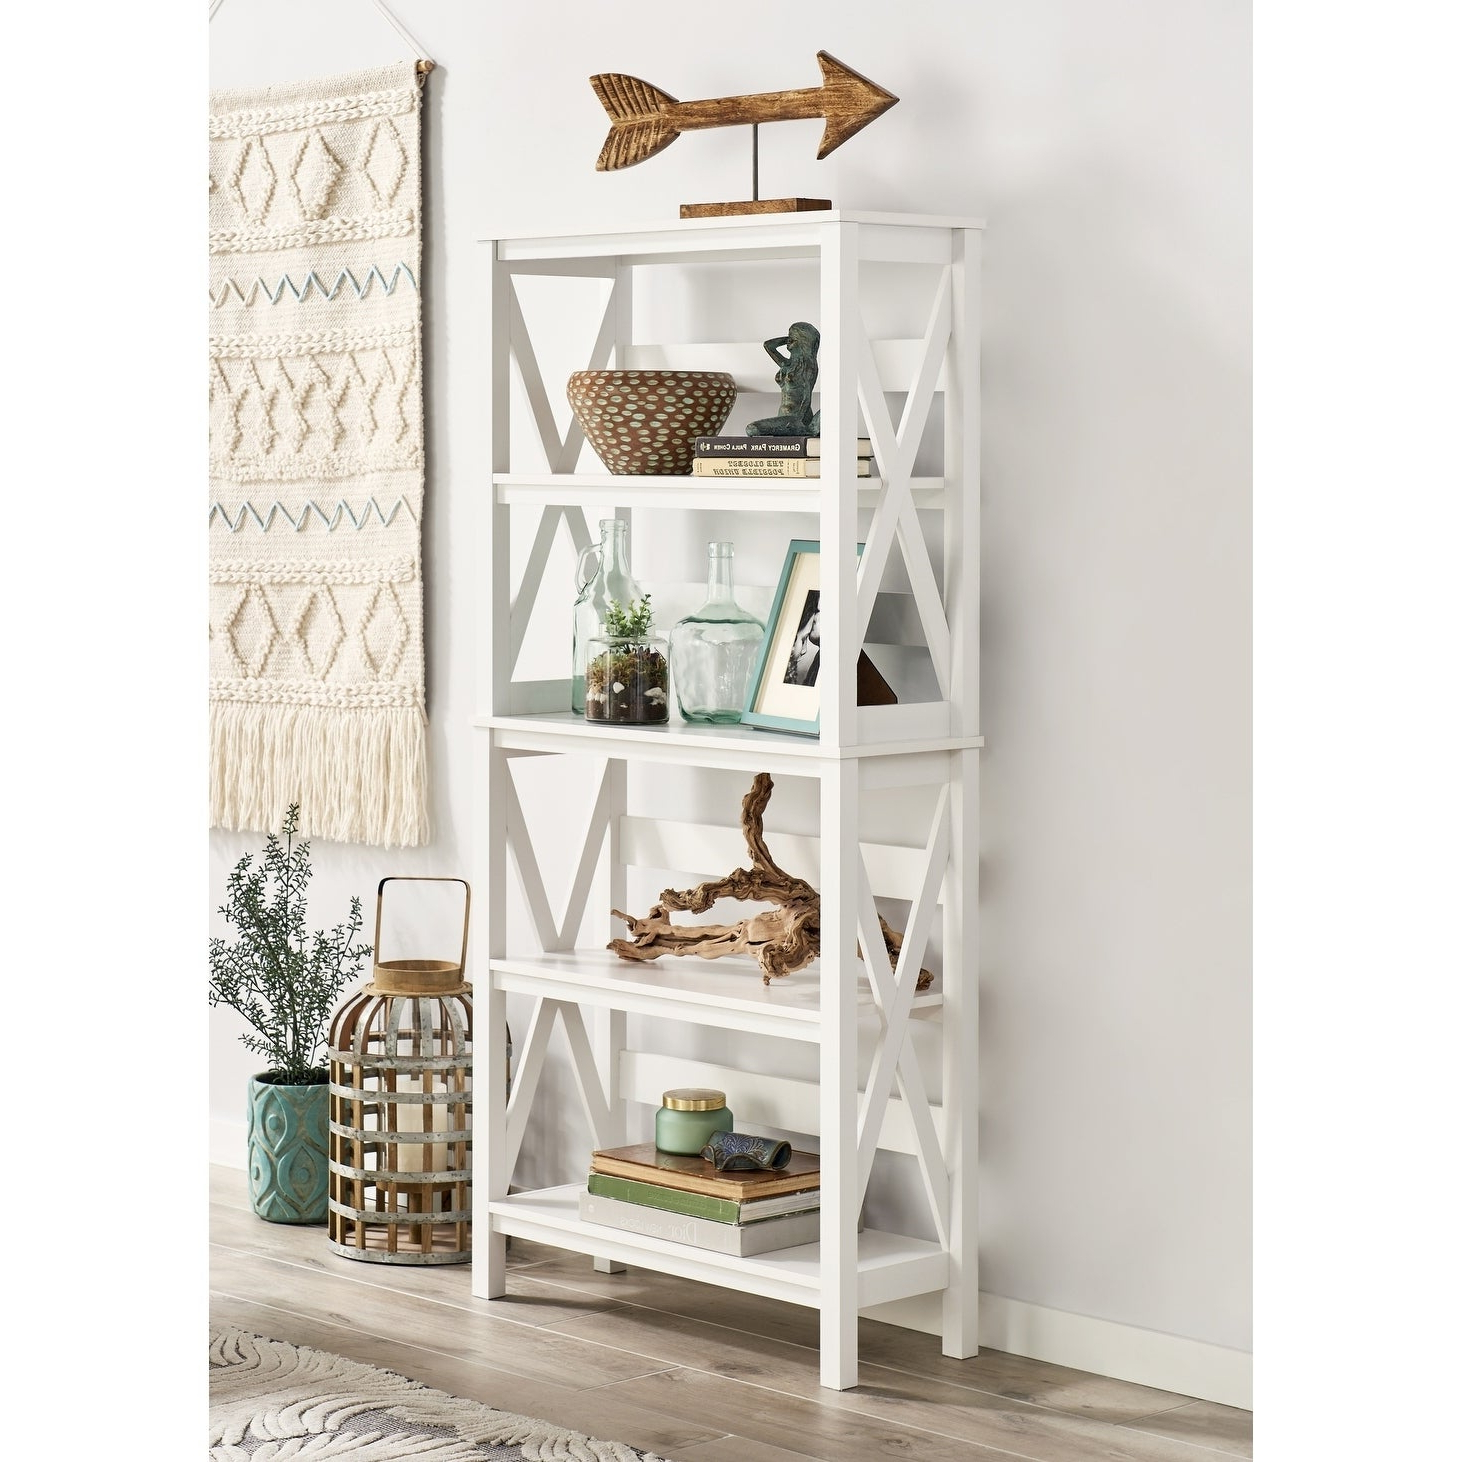 Current Buy Etagere Bookshelves & Bookcases Online At Overstock Pertaining To Macon Etagere Bookcases (Gallery 18 of 20)